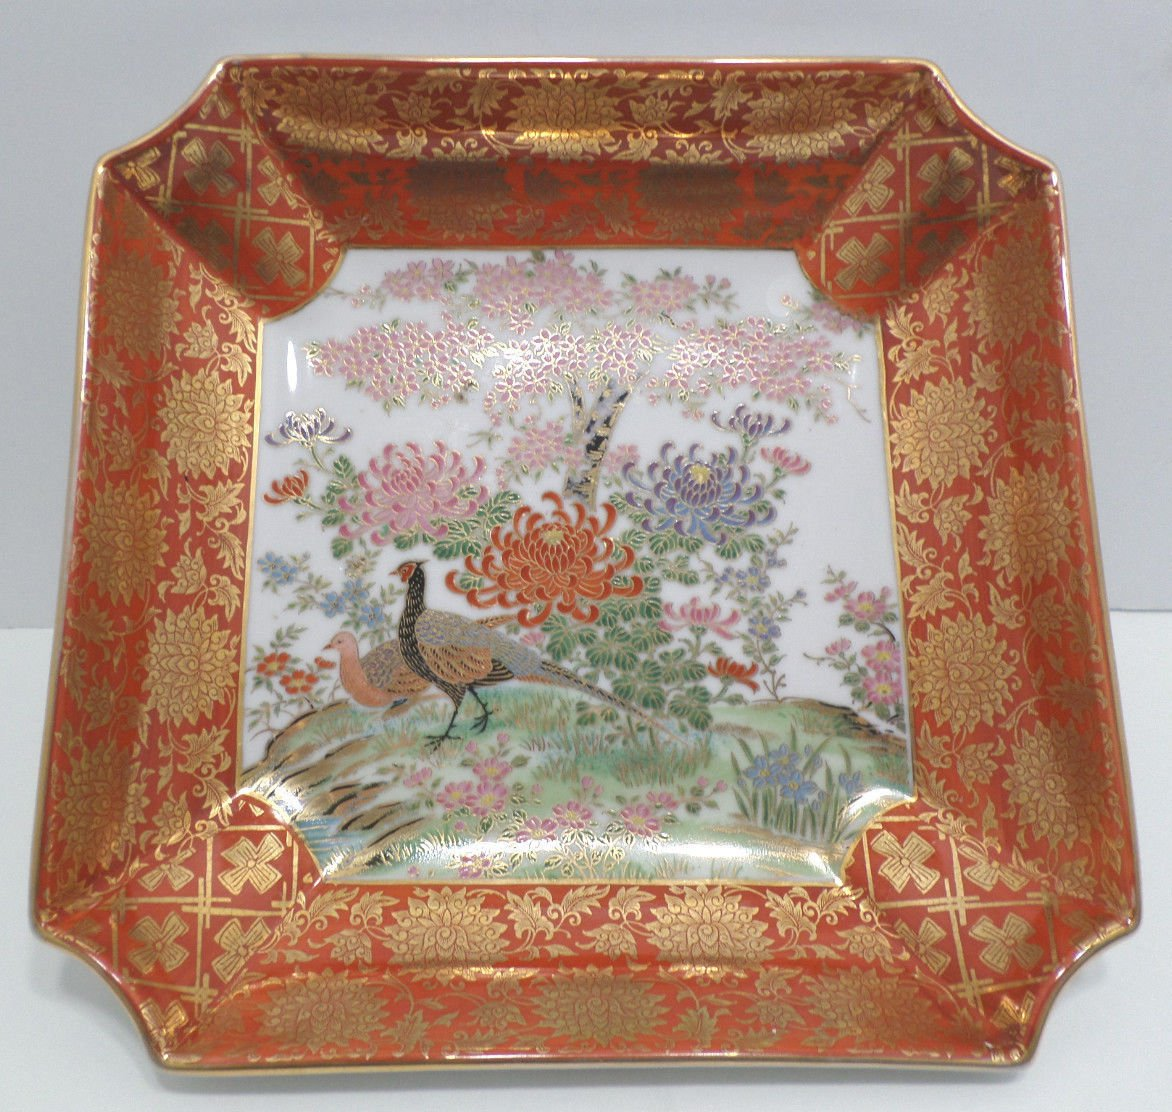 Asian Oriental Bowl Porcelain with Peacock Pattern Vintage Orange and Gold